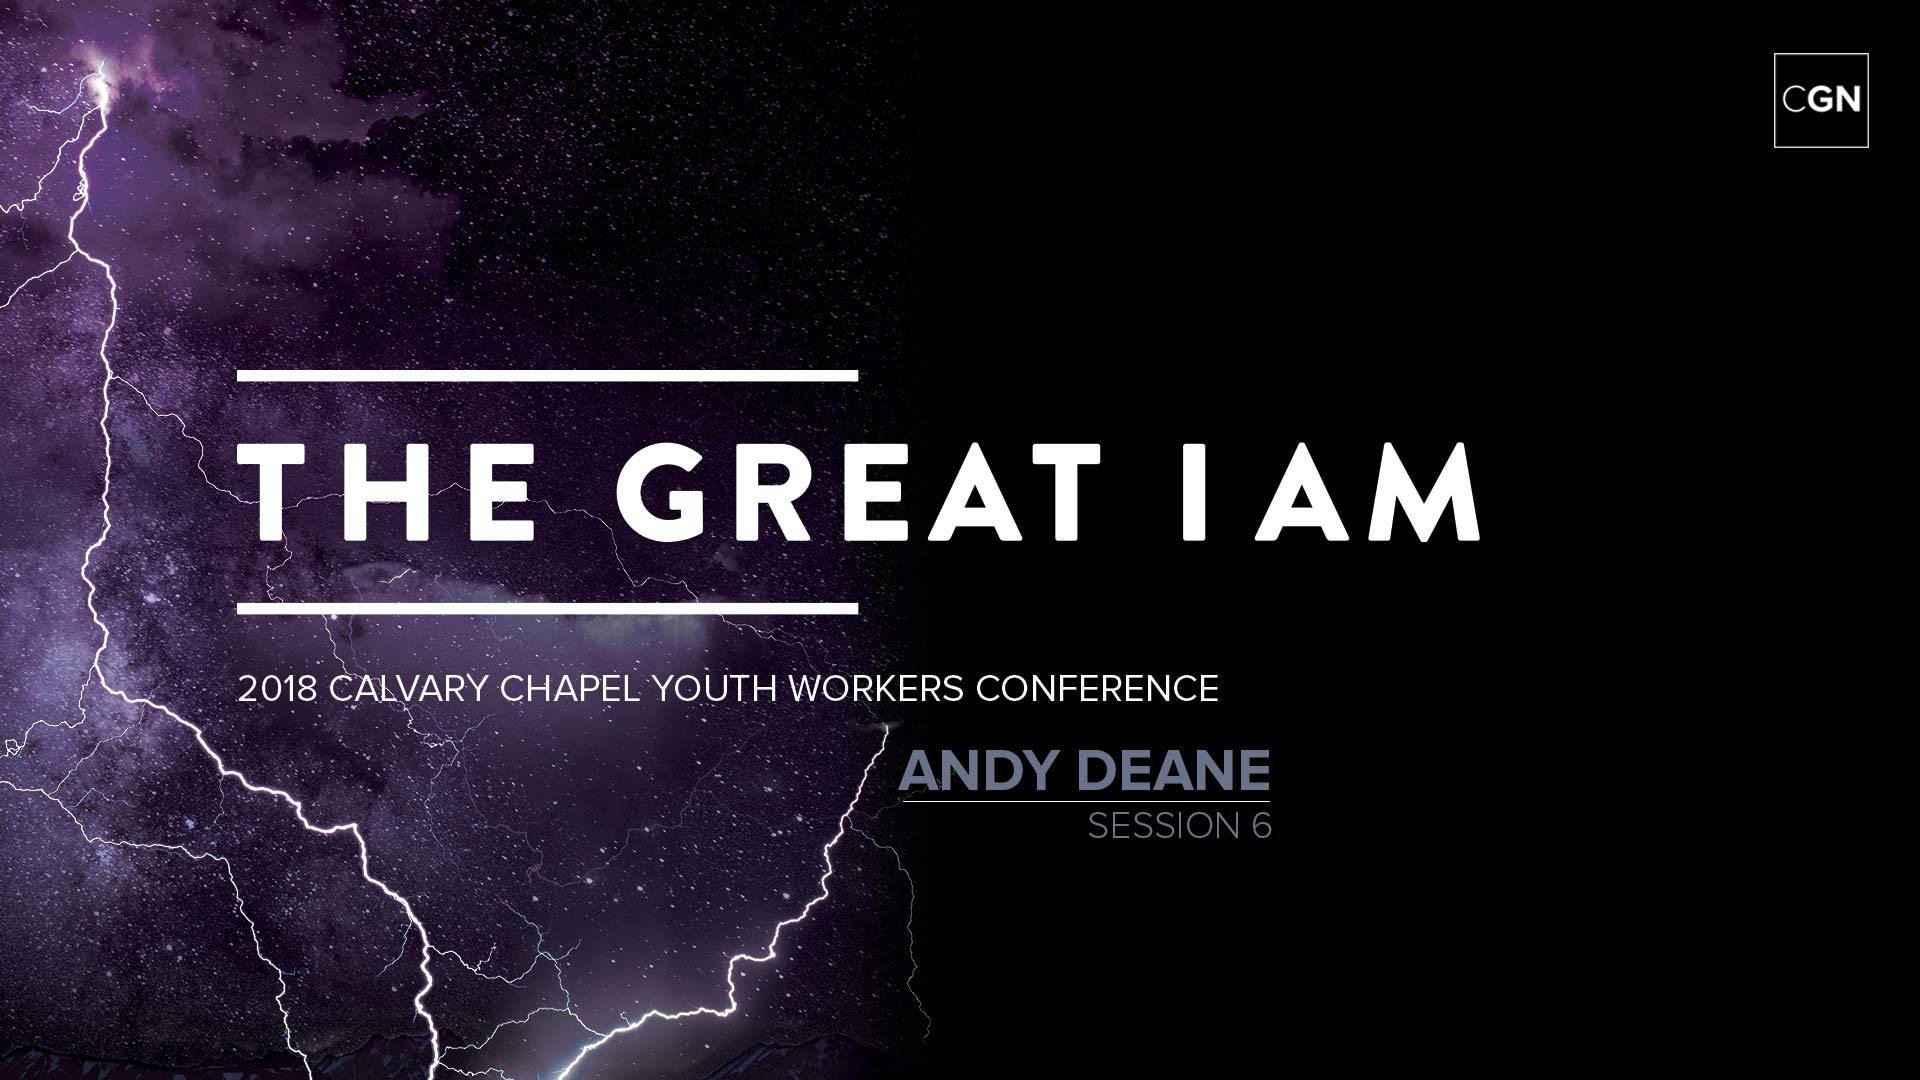 Andy Deane - Session 6